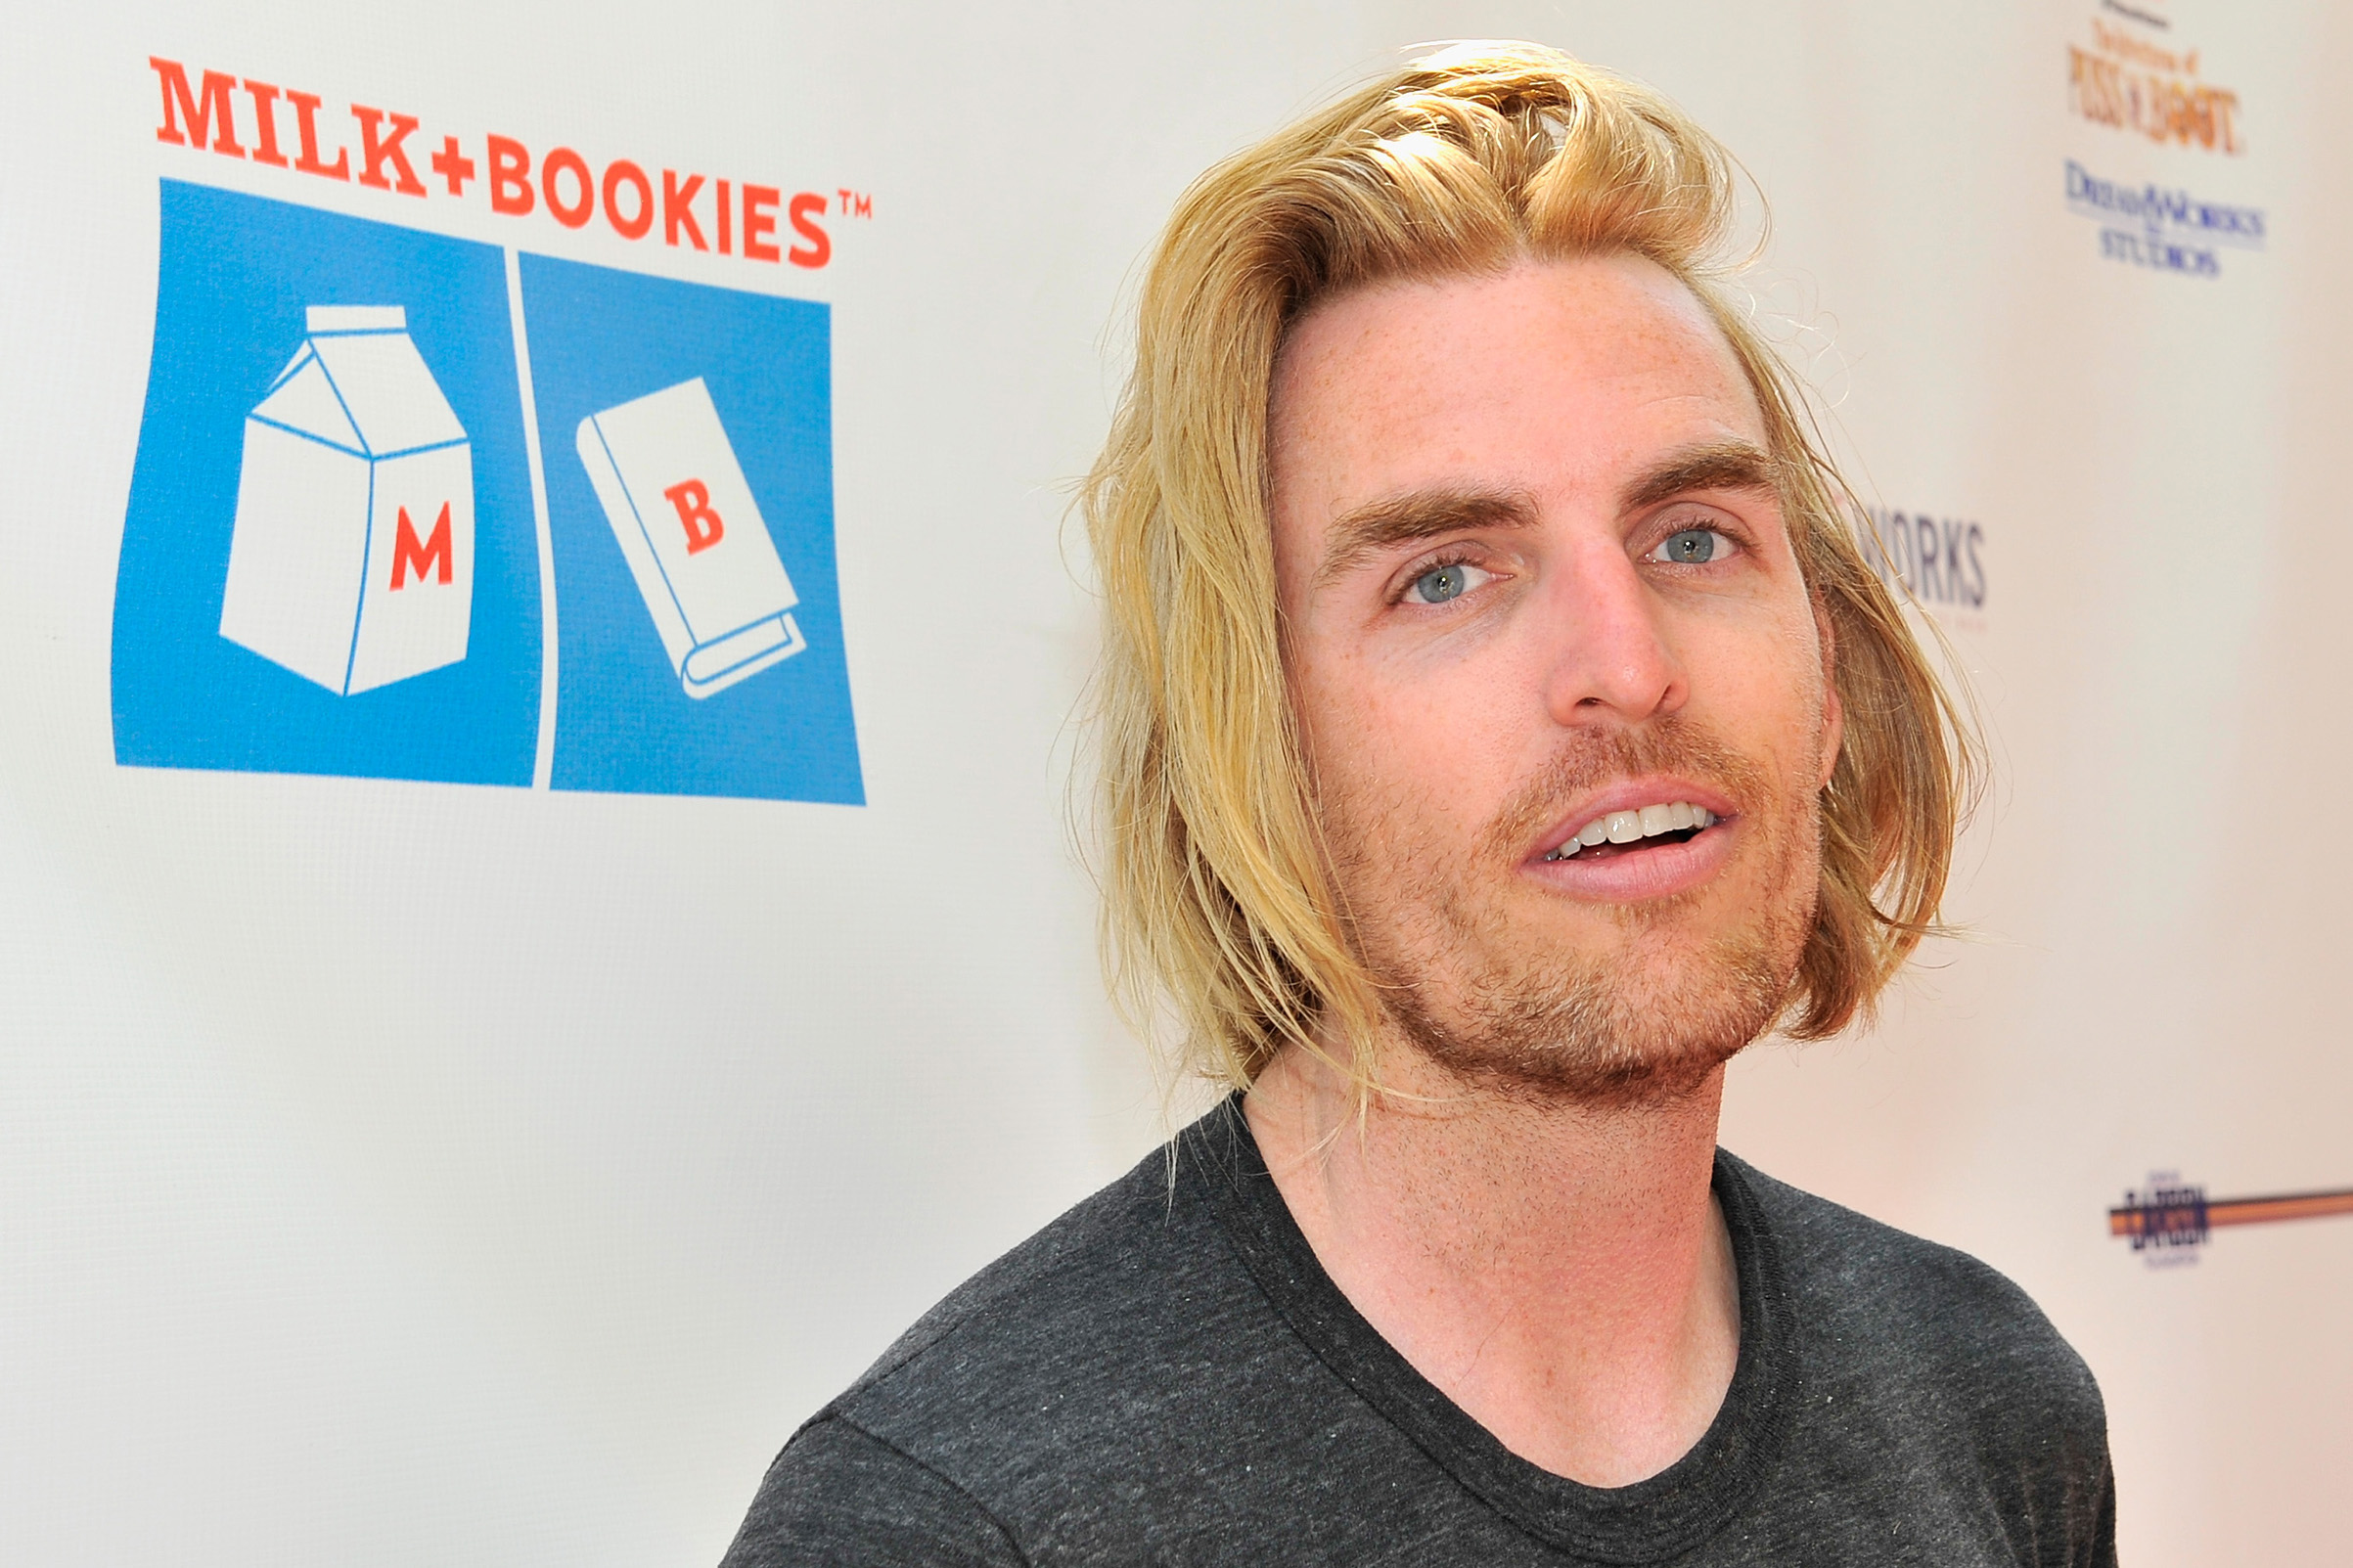 Author Dallas Clayton attends Milk + Bookies 6th Annual Story Time Celebration in Los Angeles on April 19, 2015.